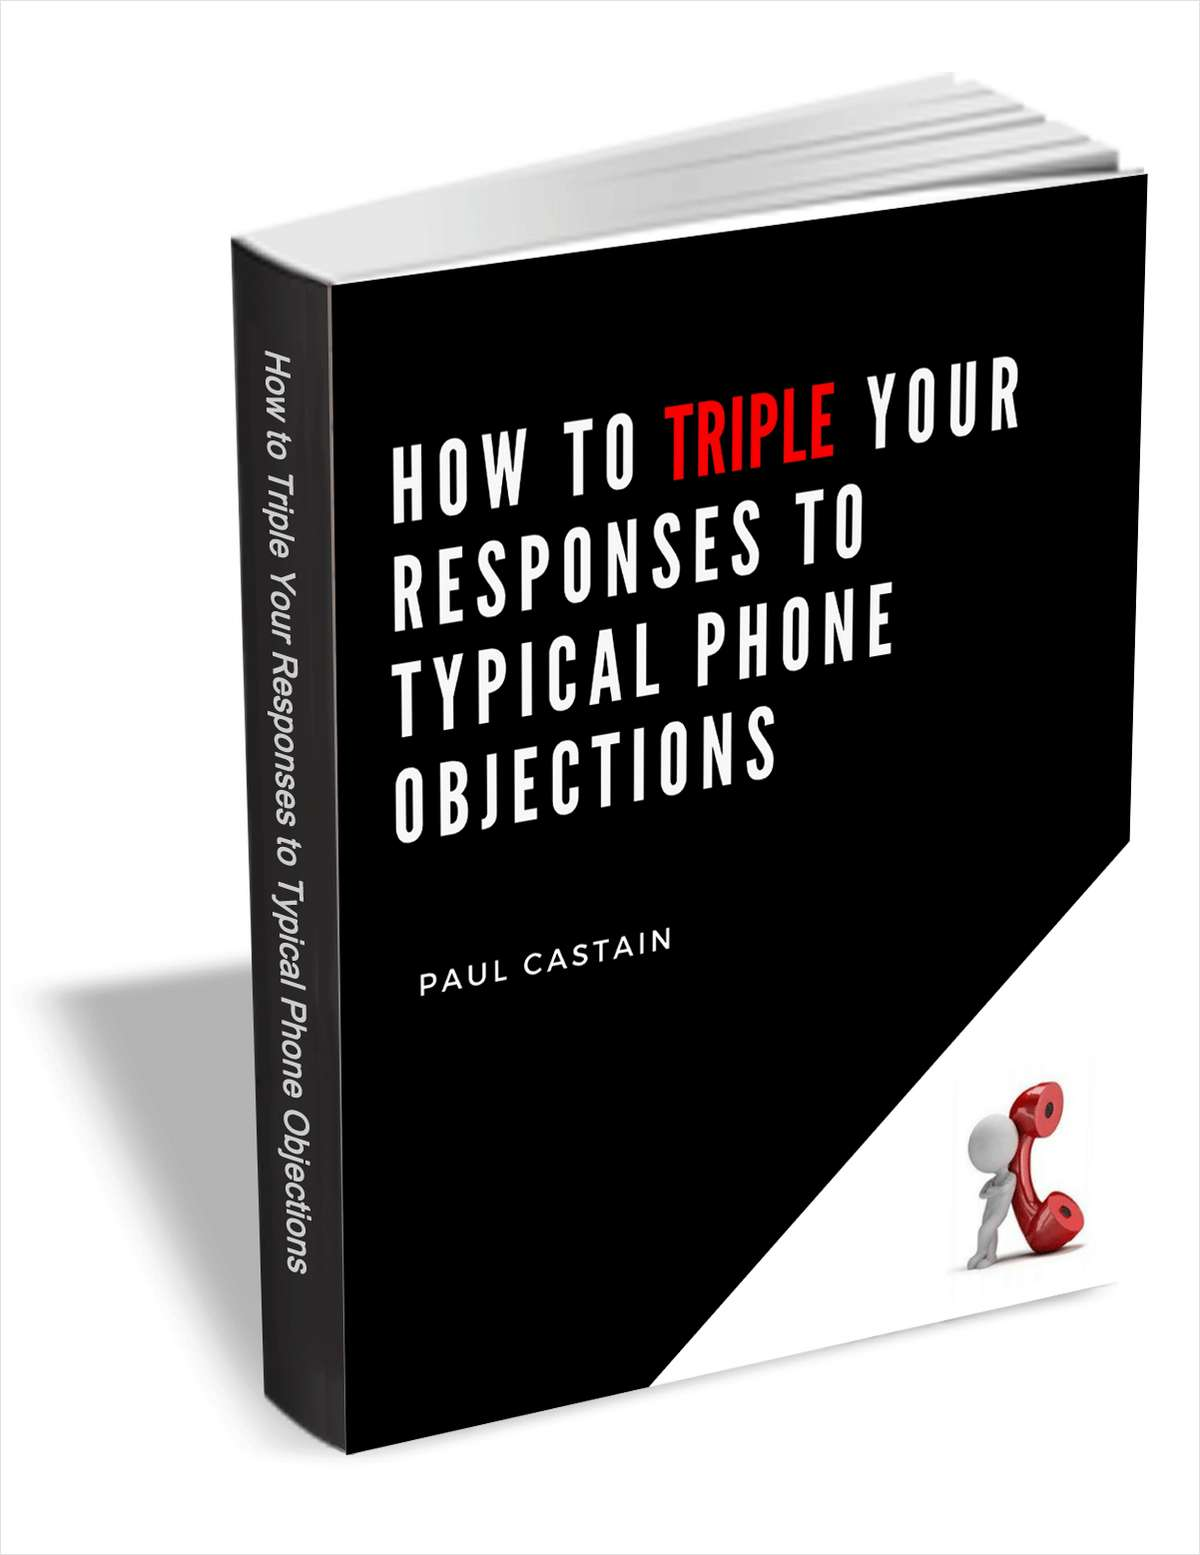 How To Triple Your Responses To Typical Phone Objections